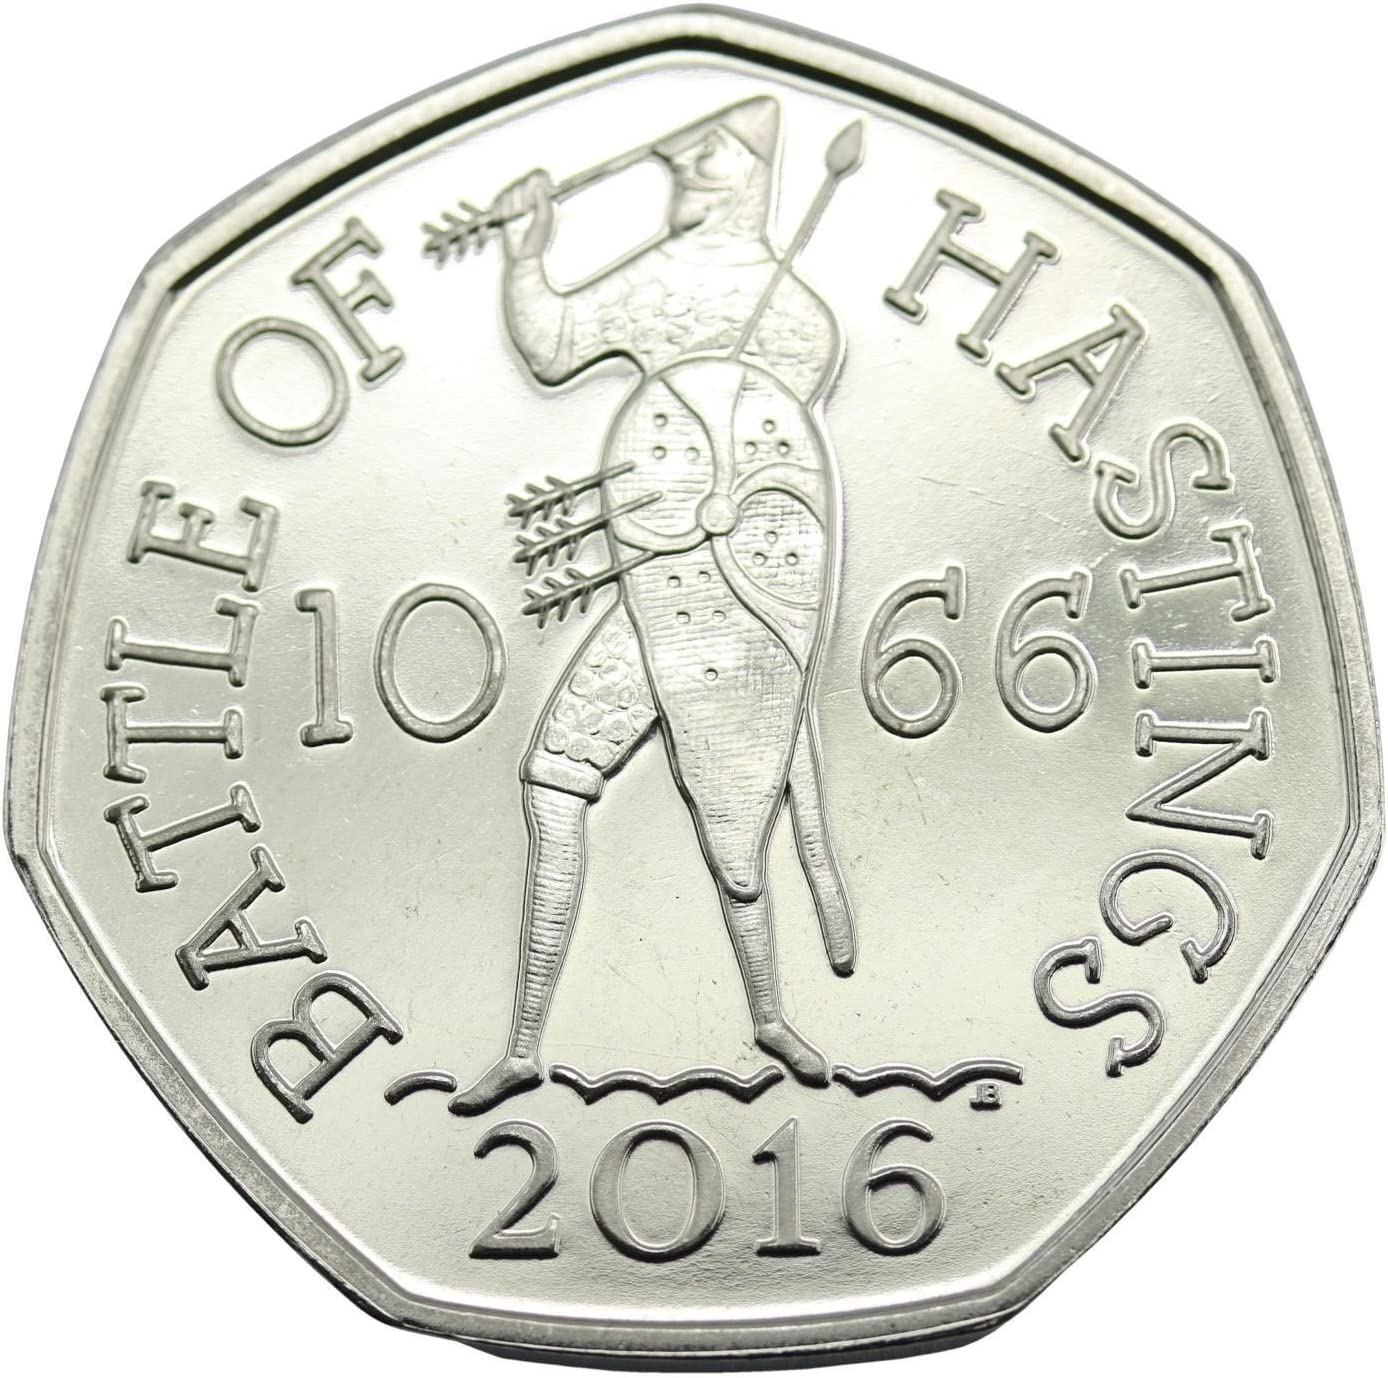 Royal Mint 2016 Battle Of Hastings 950th Anniversary 50p Coin Out Of Royal Mint Sealed Bag Amazon Co Uk Toys Games